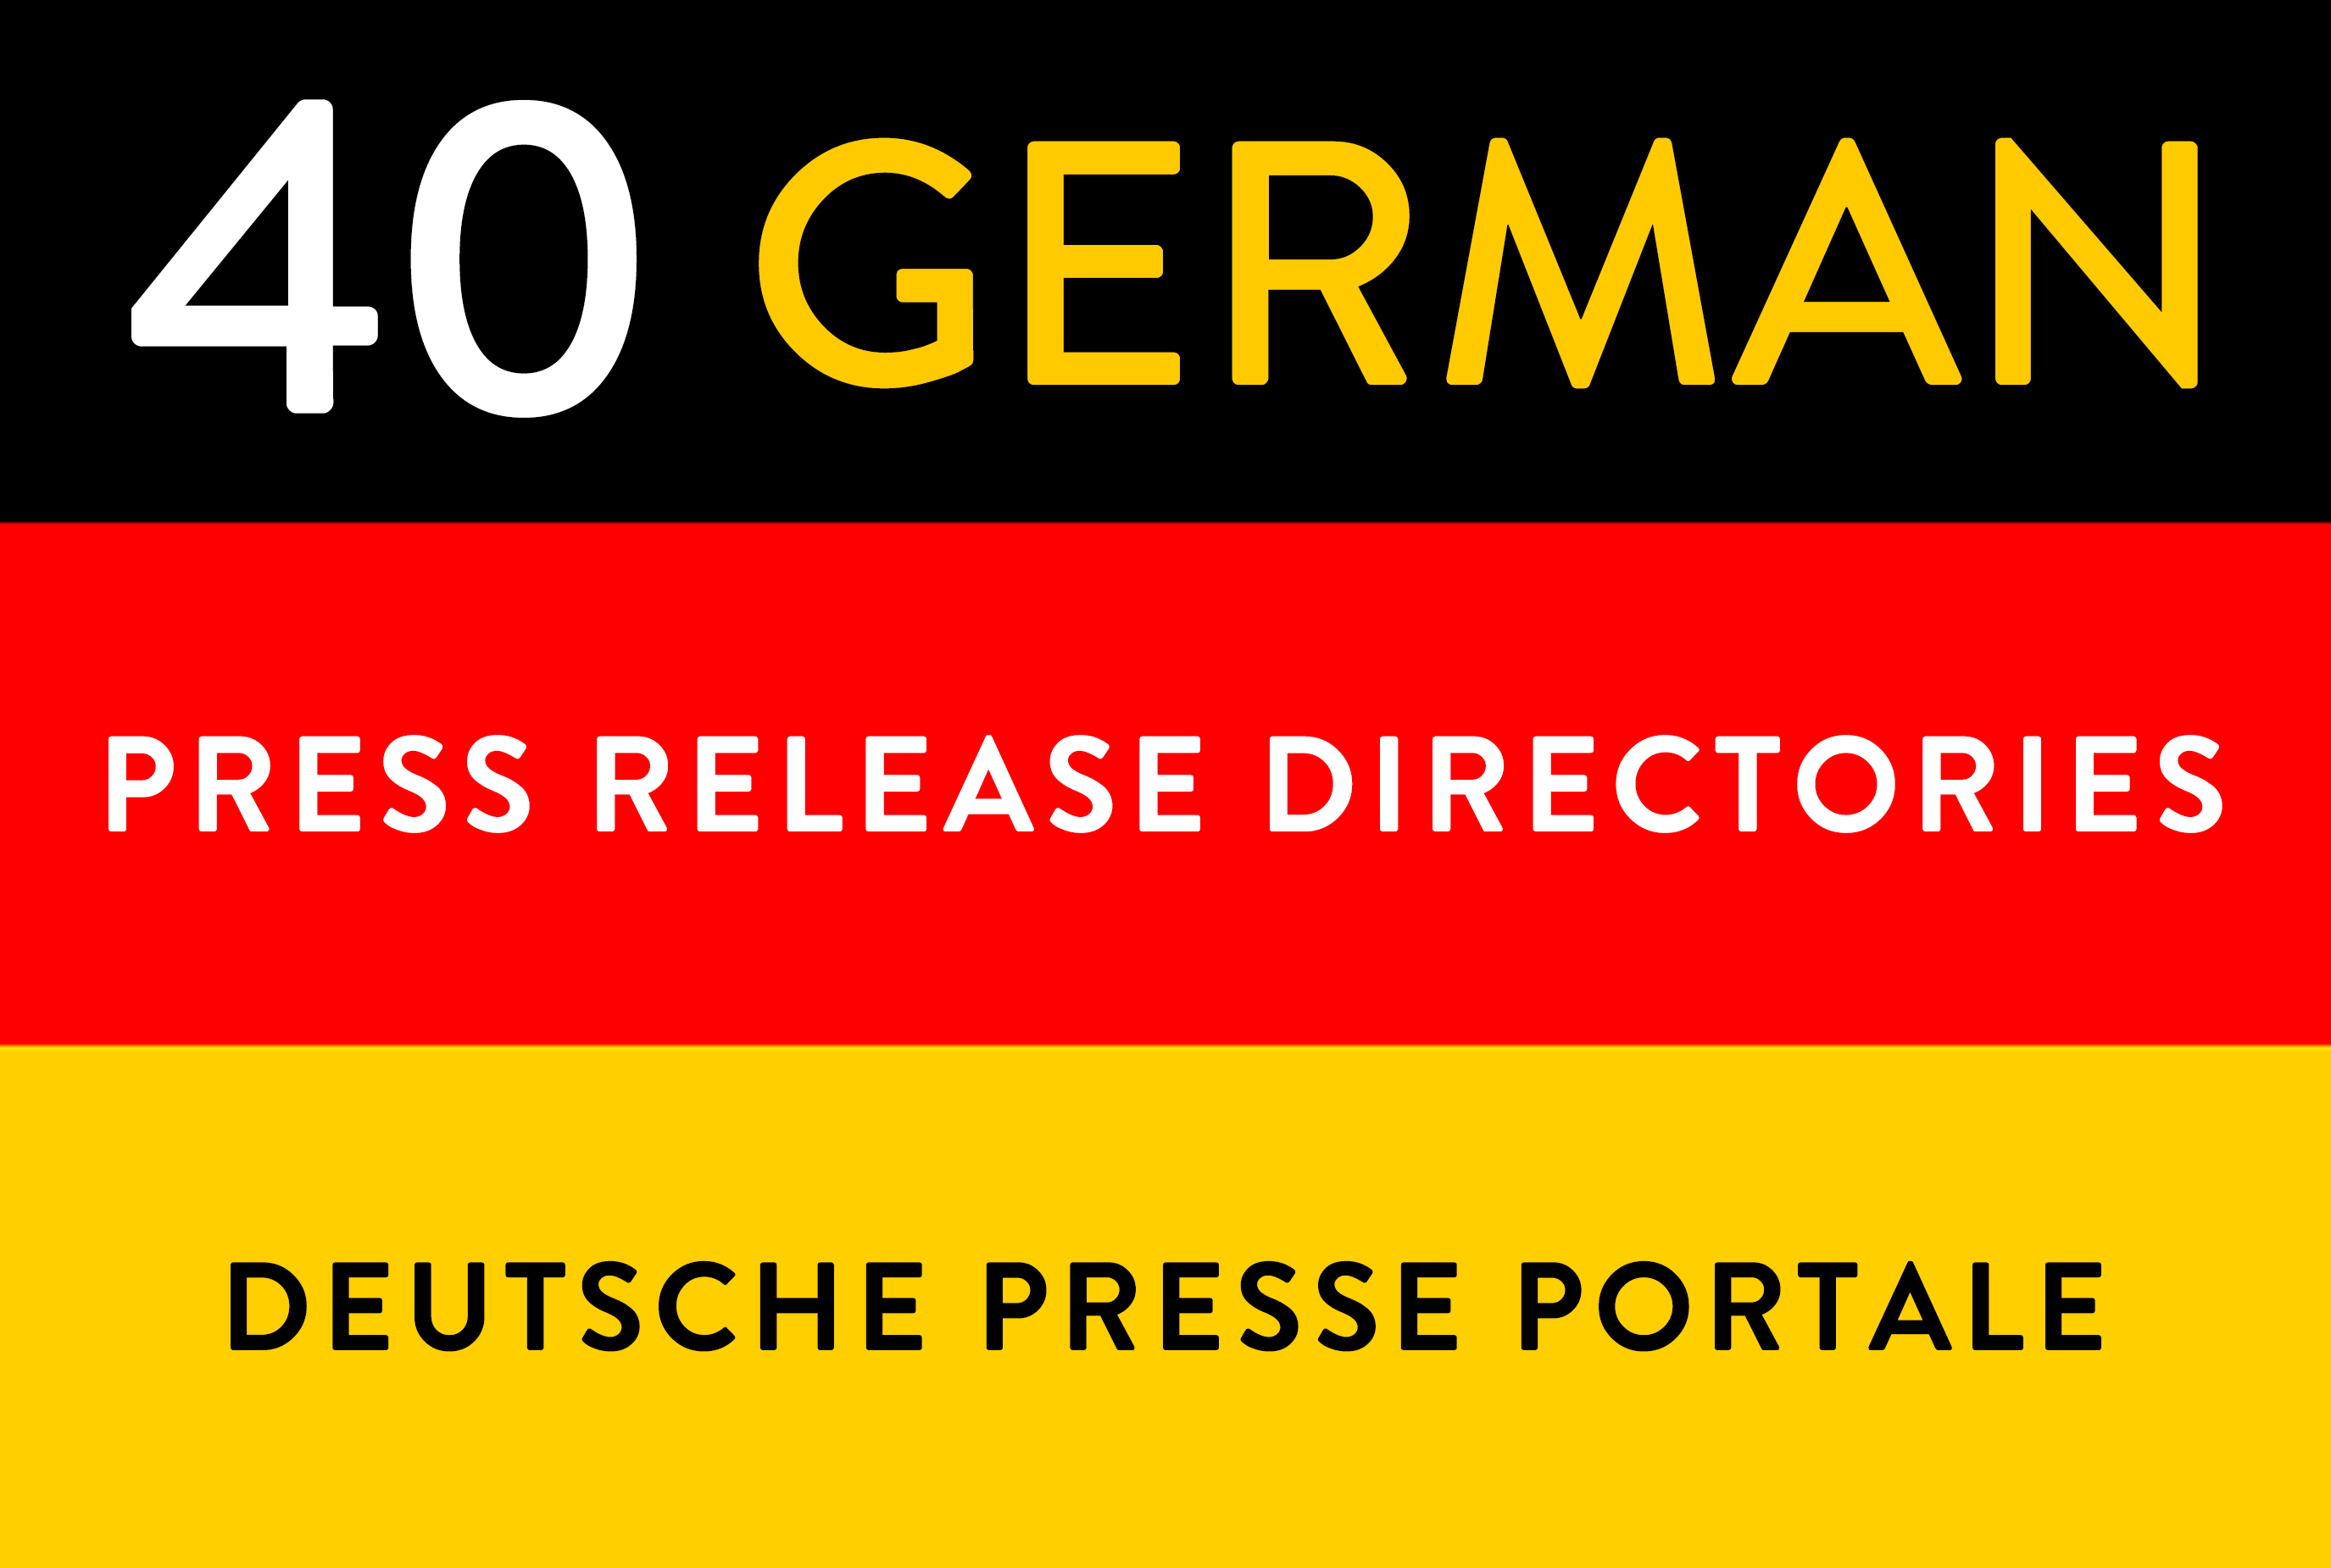 Manual submissions to 40 german deutsche press release directories backlinks seo link building